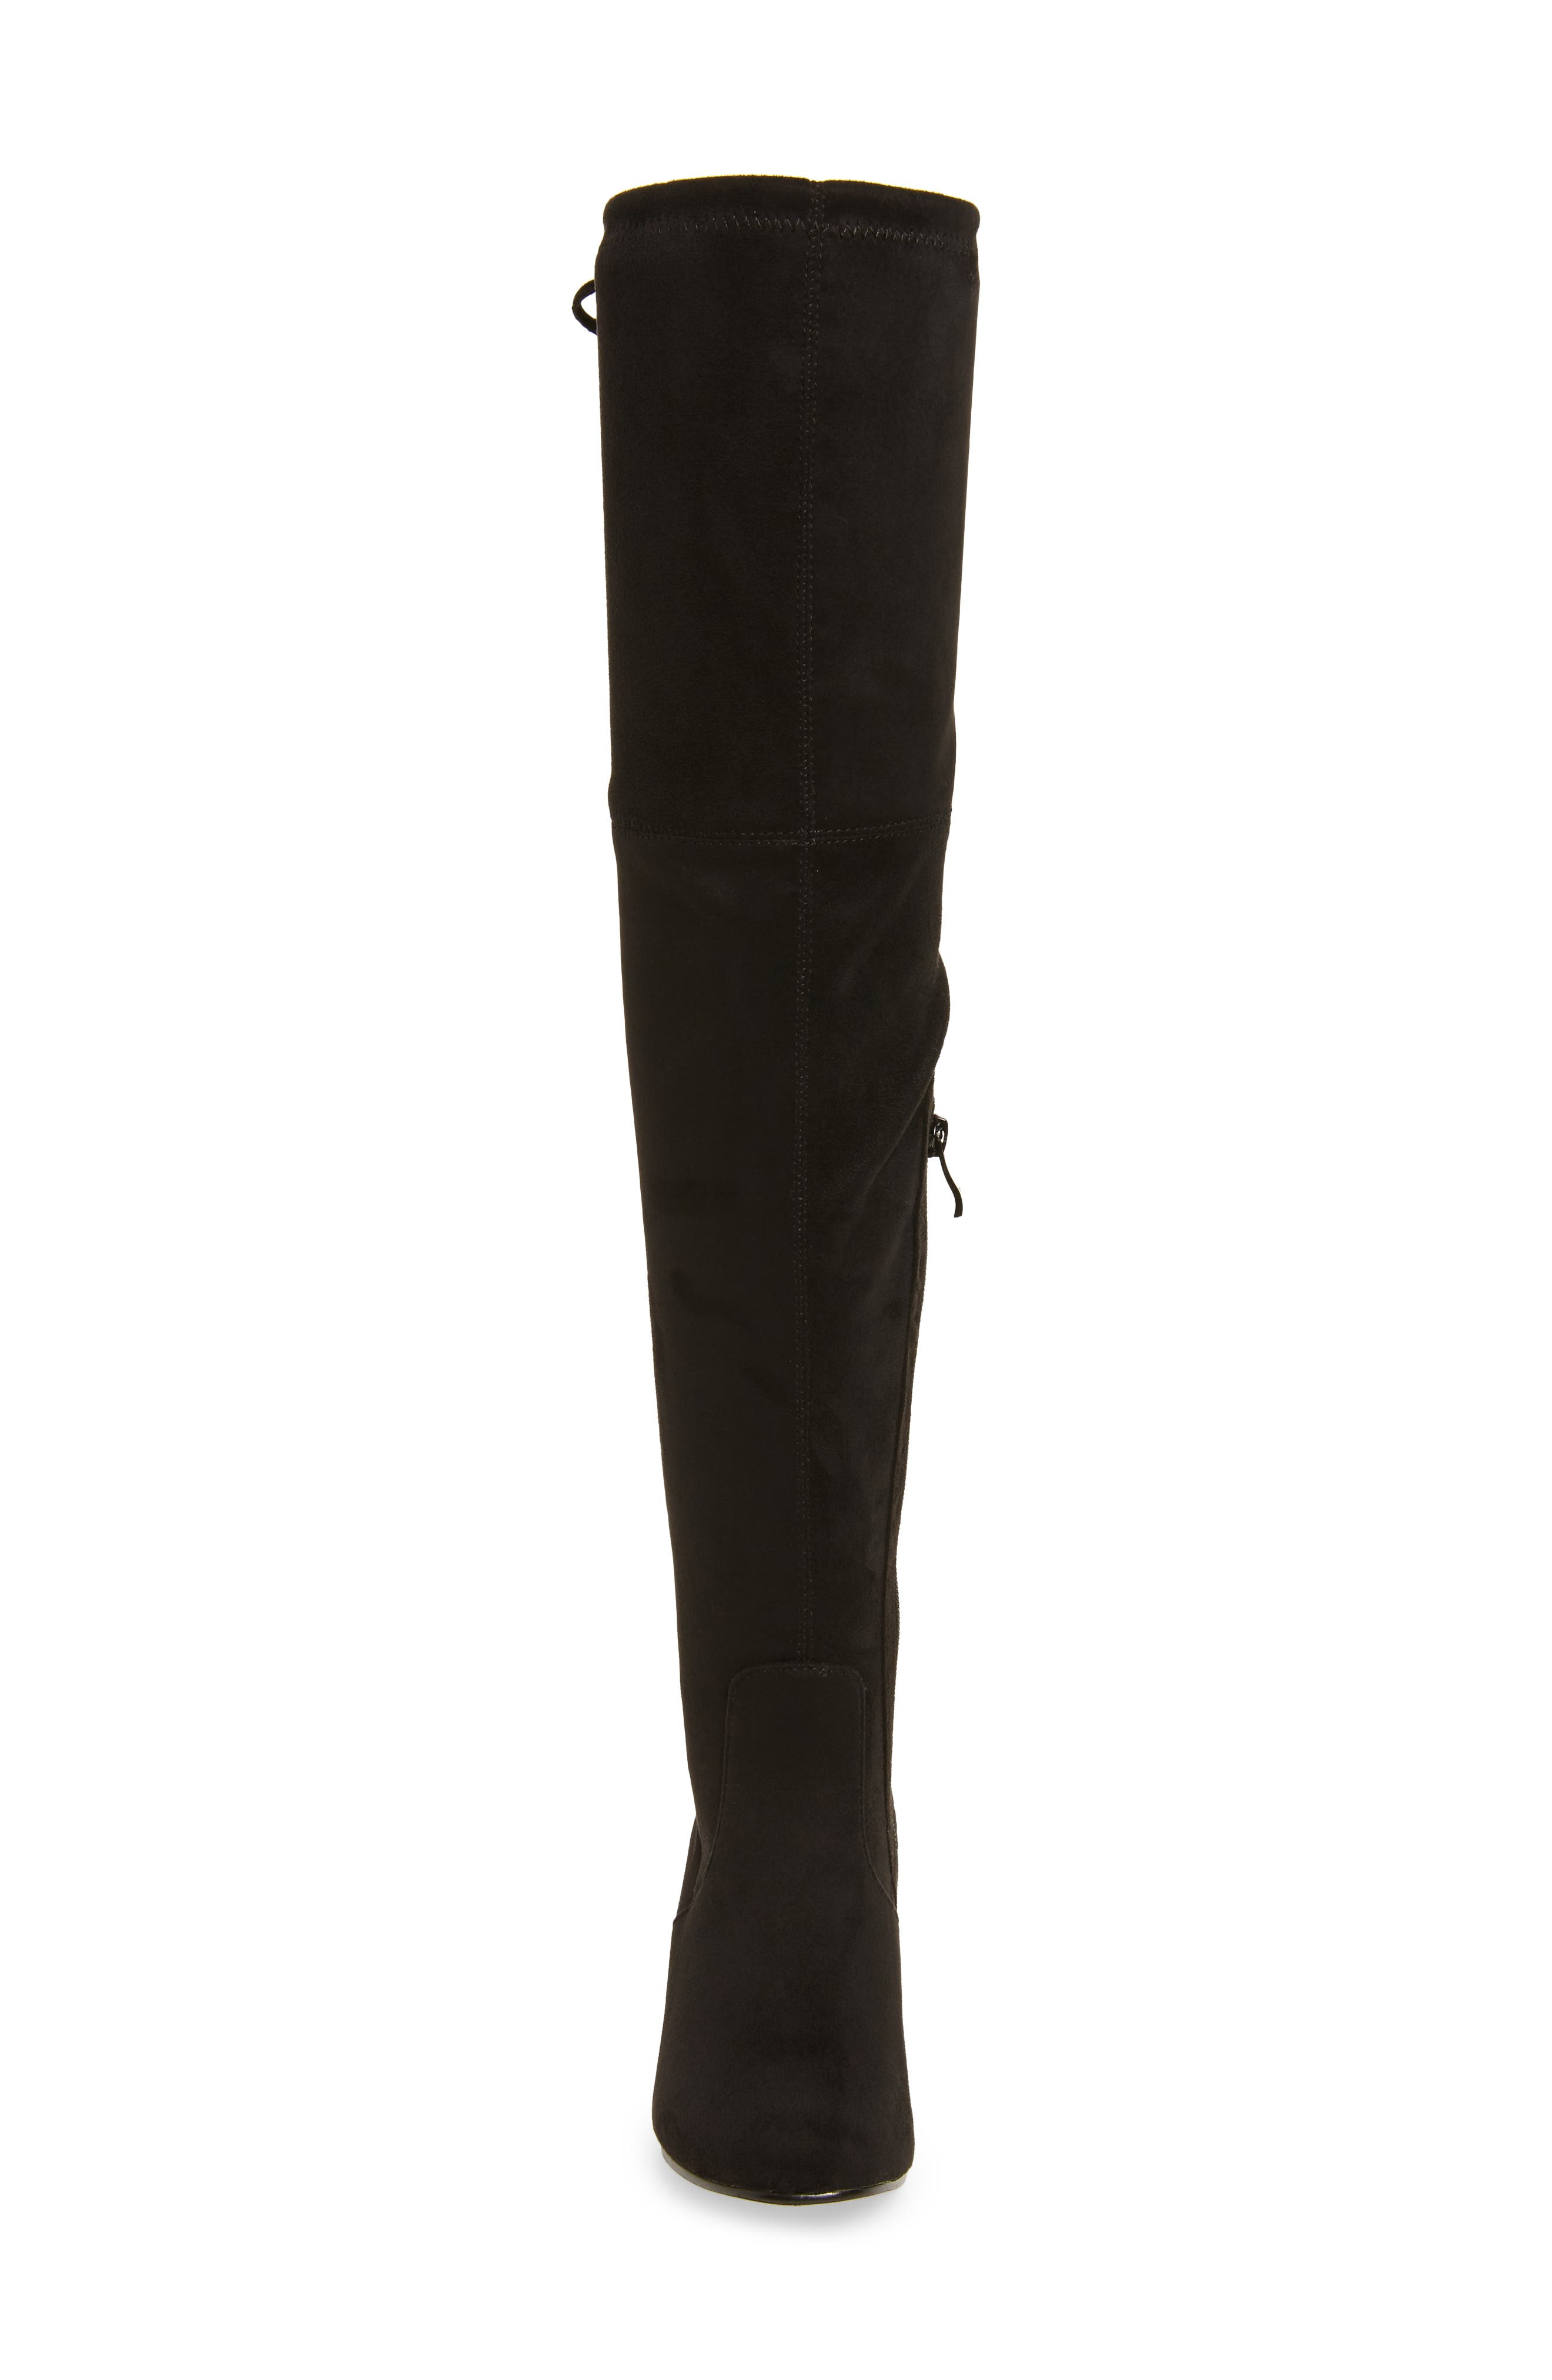 Heartbeat Over the Knee Boot,                             Alternate thumbnail 4, color,                             Black